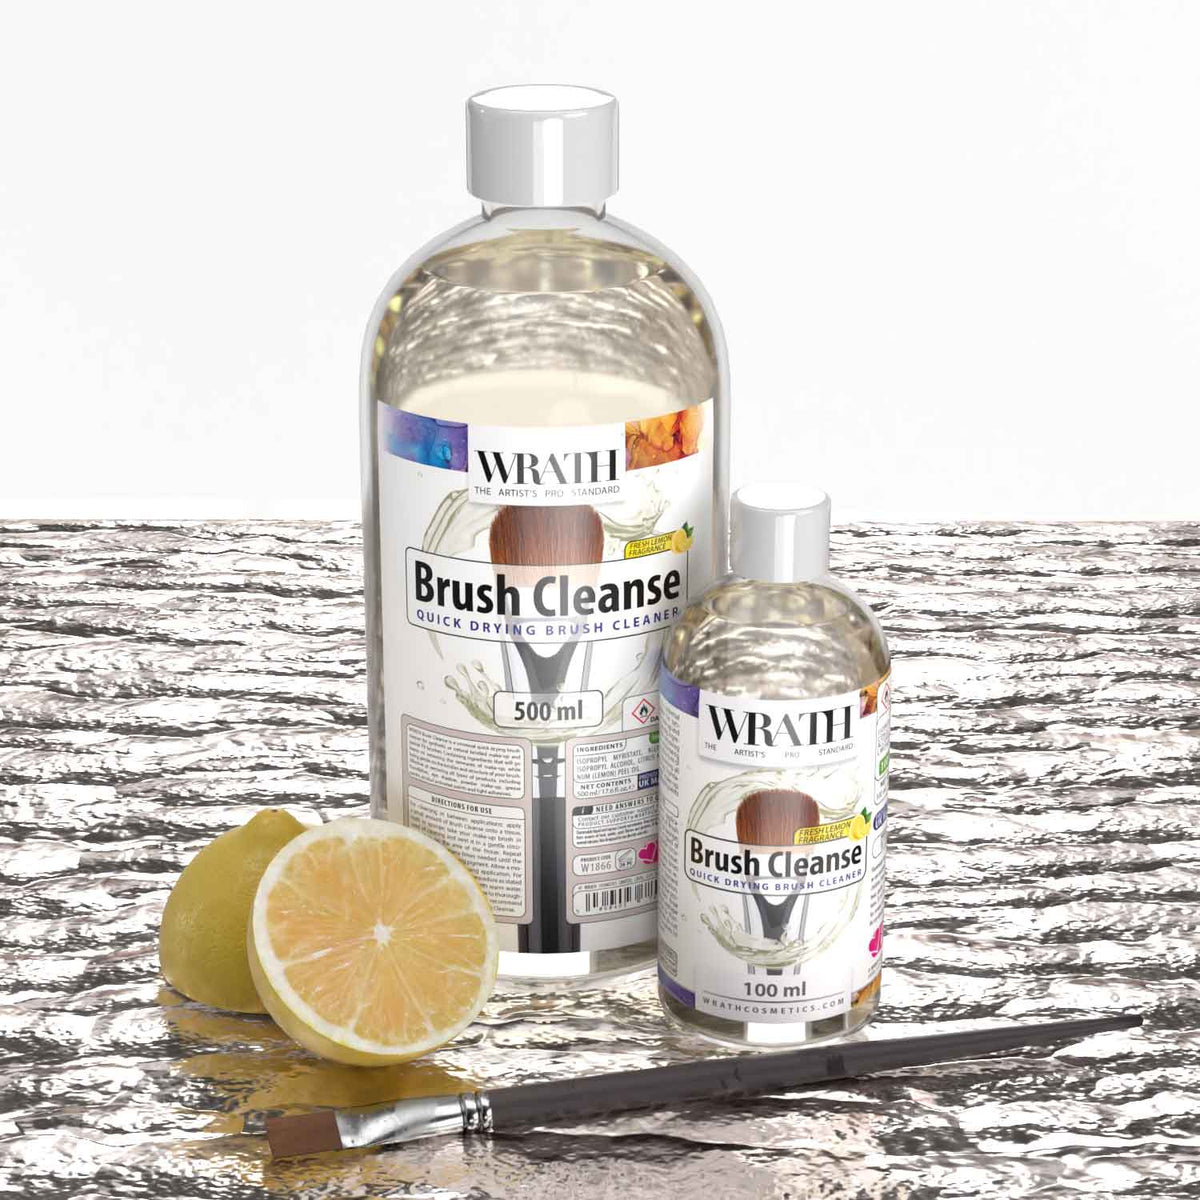 WRATH Brush Cleanse - Quick Drying Brush Cleaner